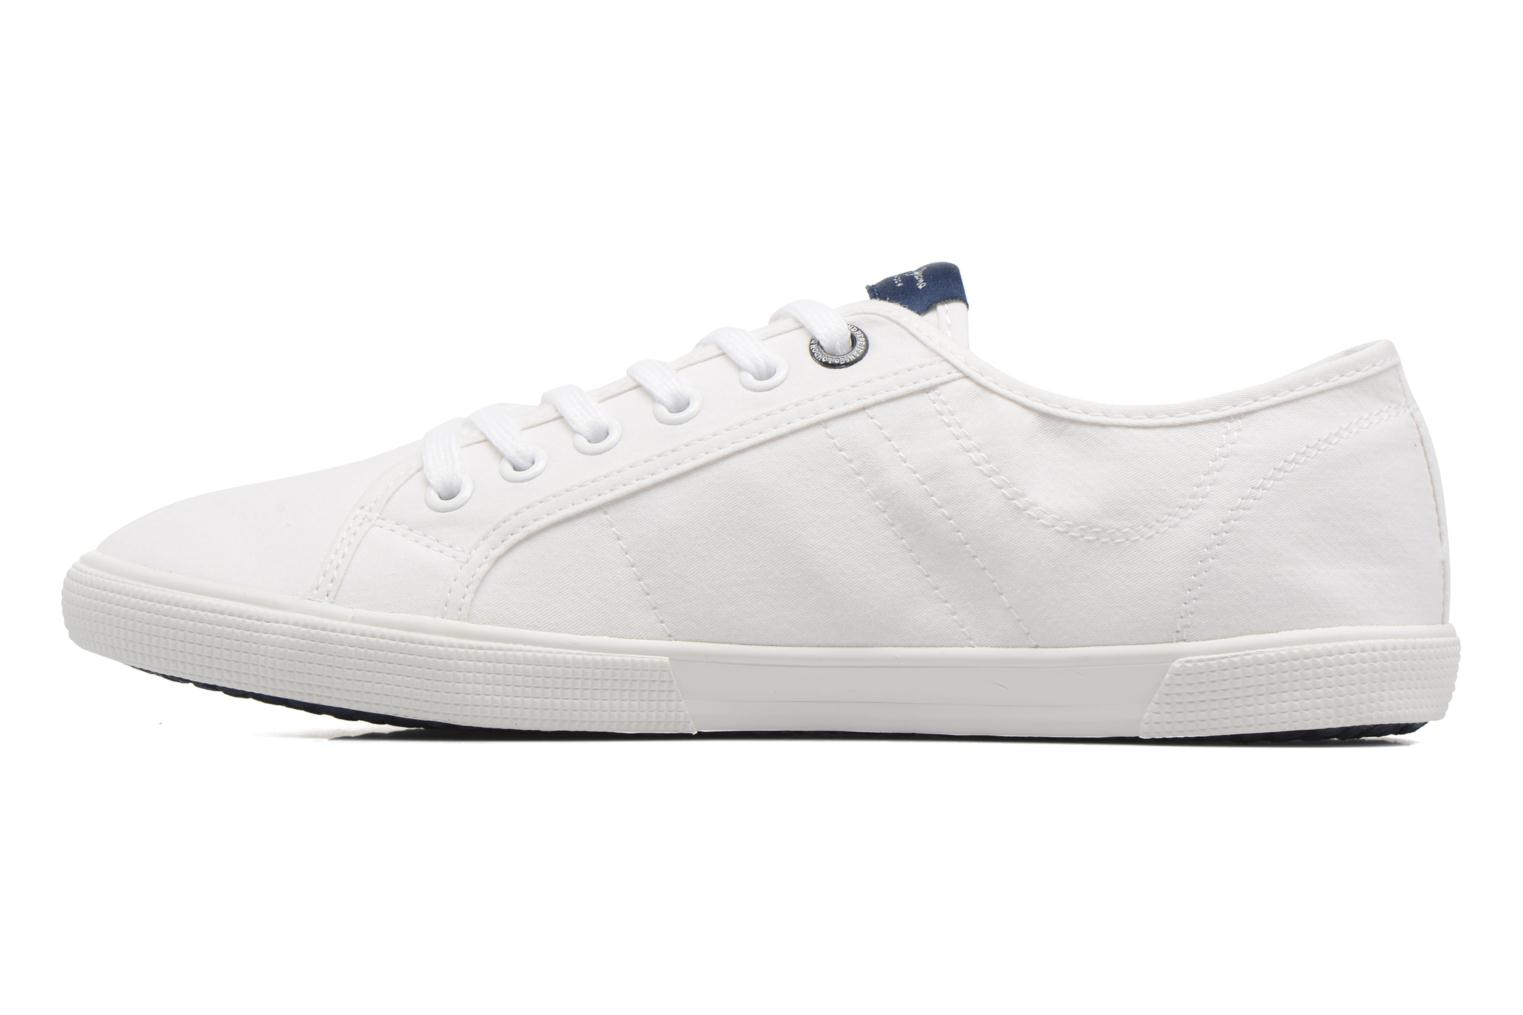 Baskets Pepe jeans Aberman 2.1 Blanc vue face